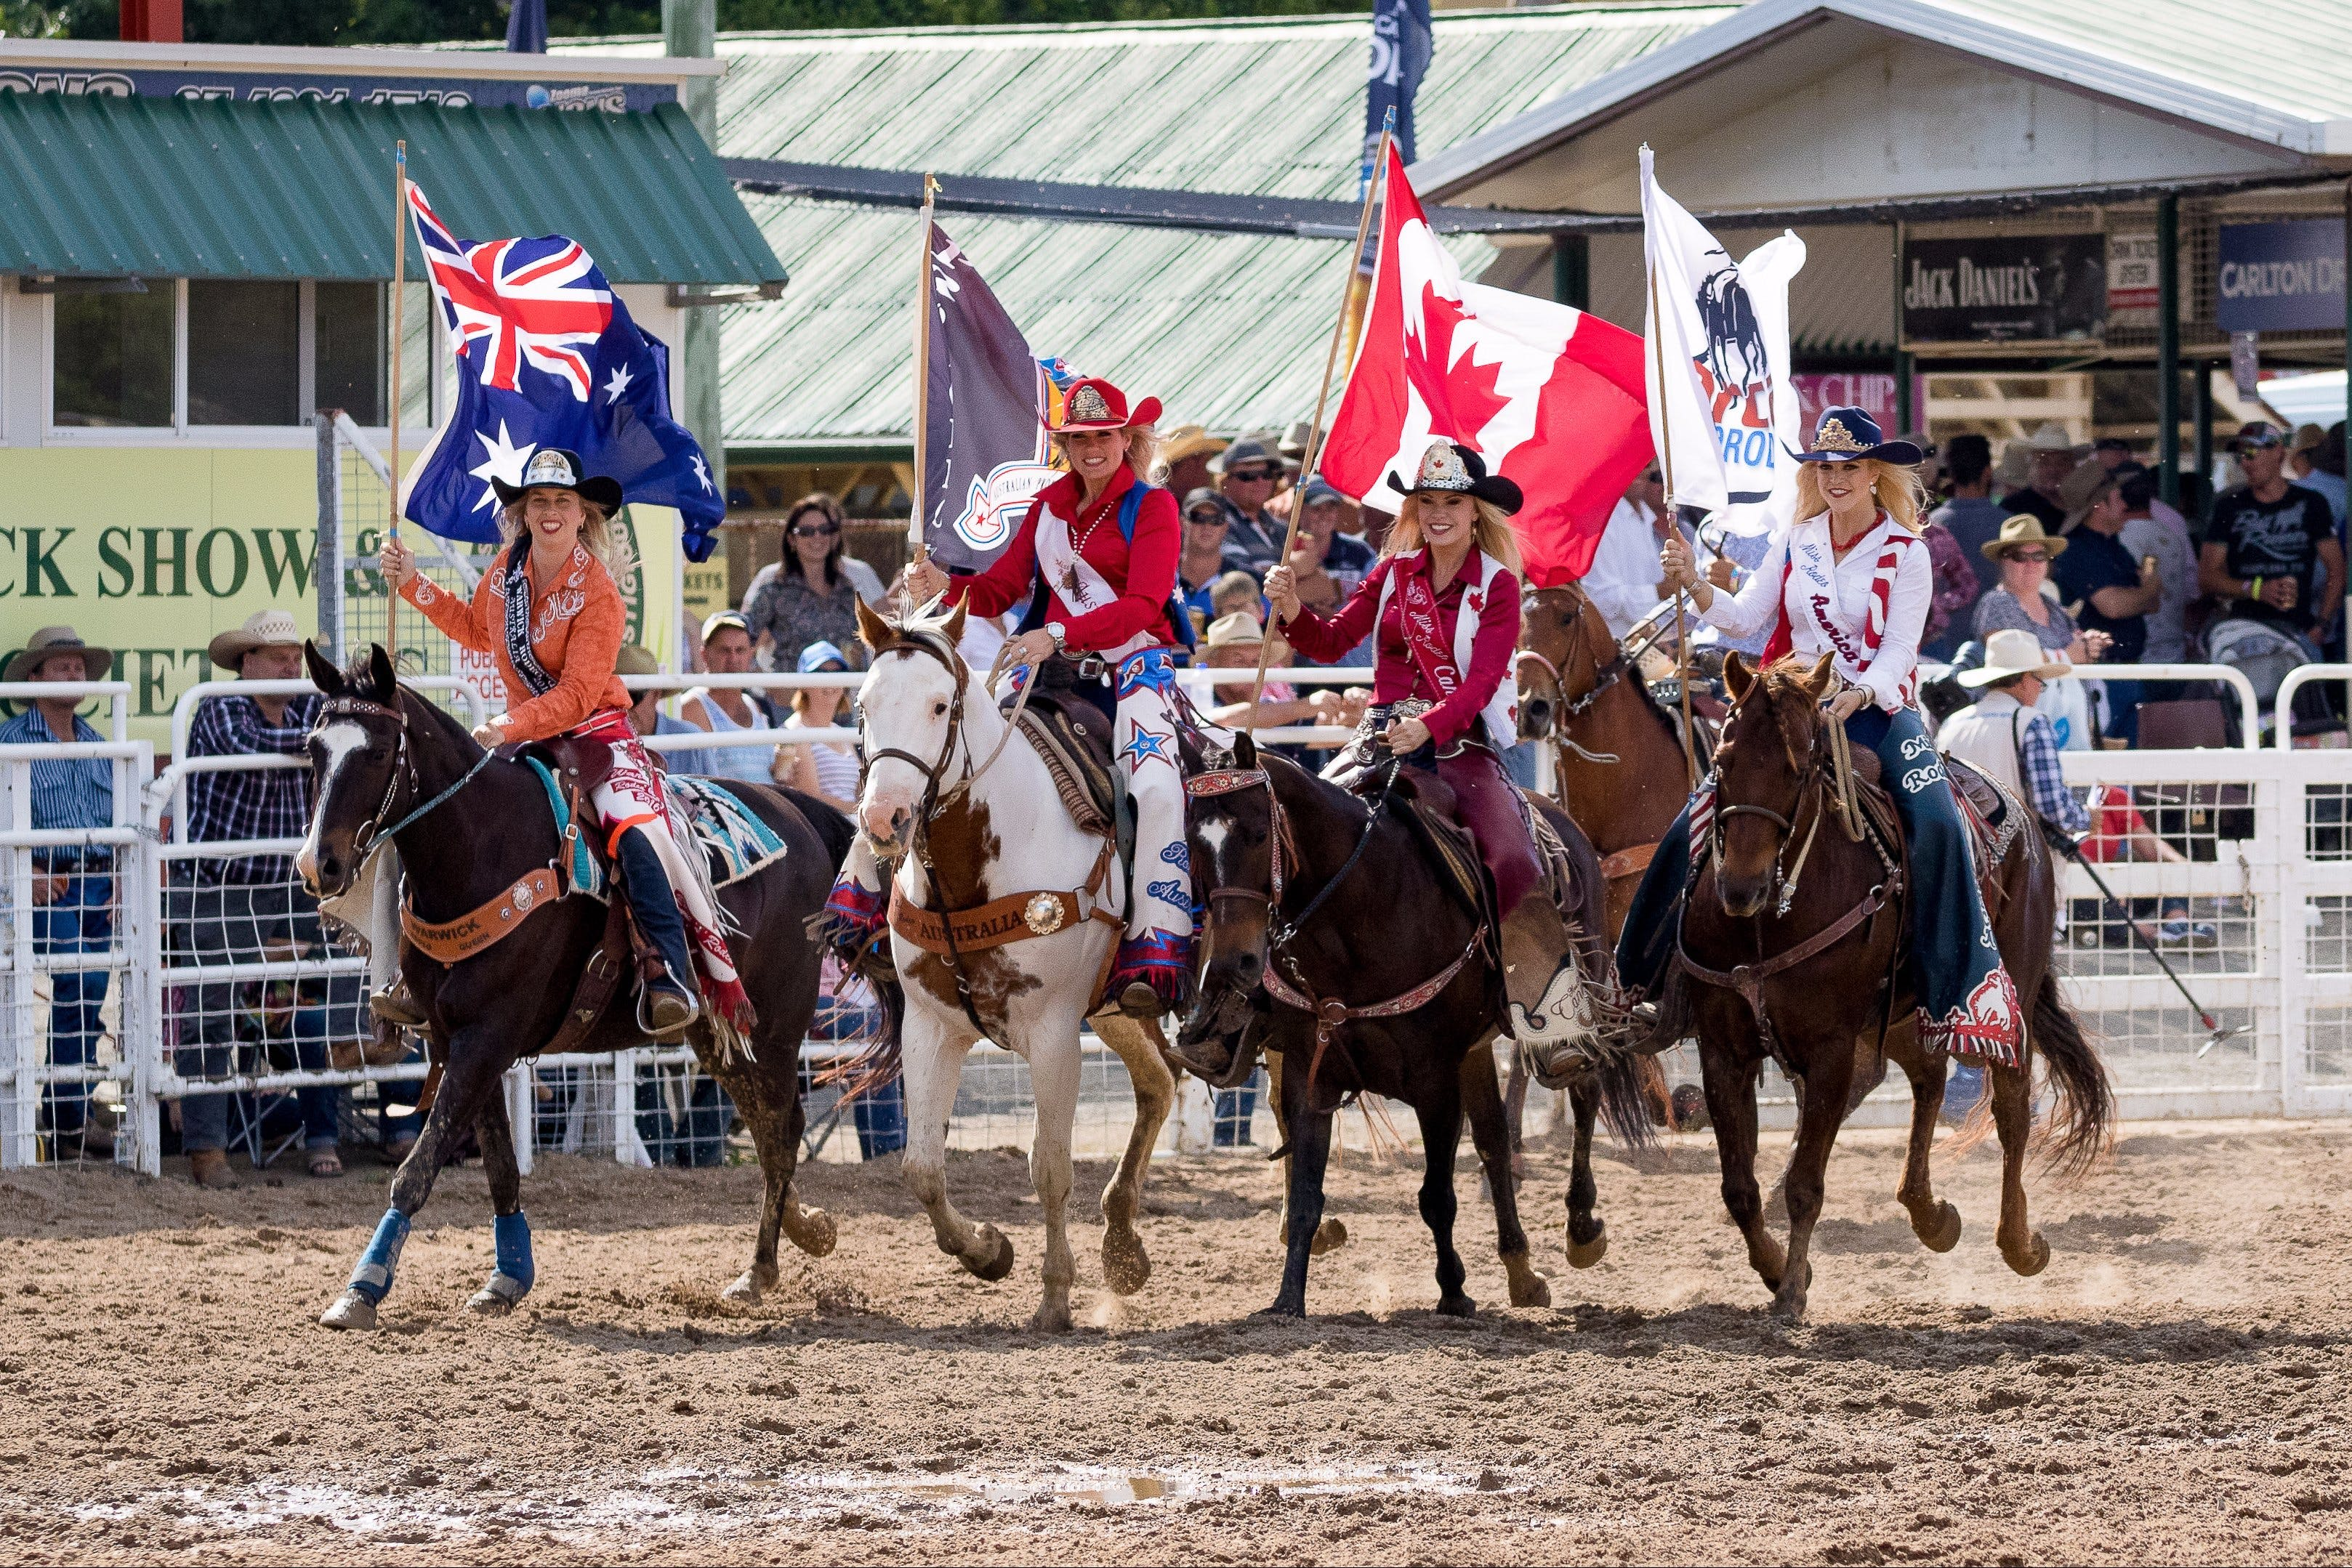 Warwick Rodeo National APRA National Finals and Warwick Gold Cup Campdraft - Newcastle Accommodation